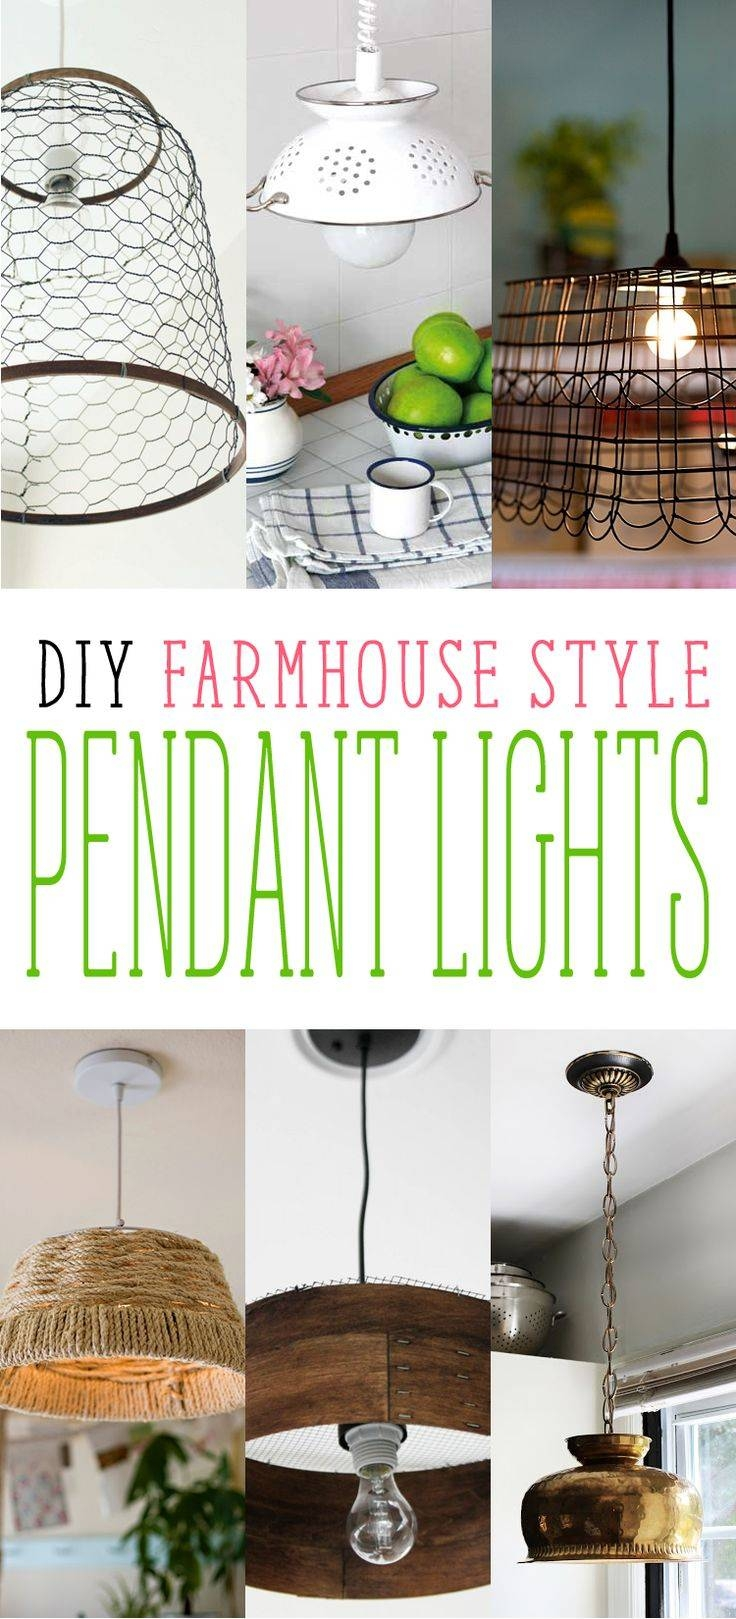 373 Best Lighting Images On Pinterest | Lighting Ideas, Crafts And with Cottage Style Pendant Lights (Image 1 of 15)